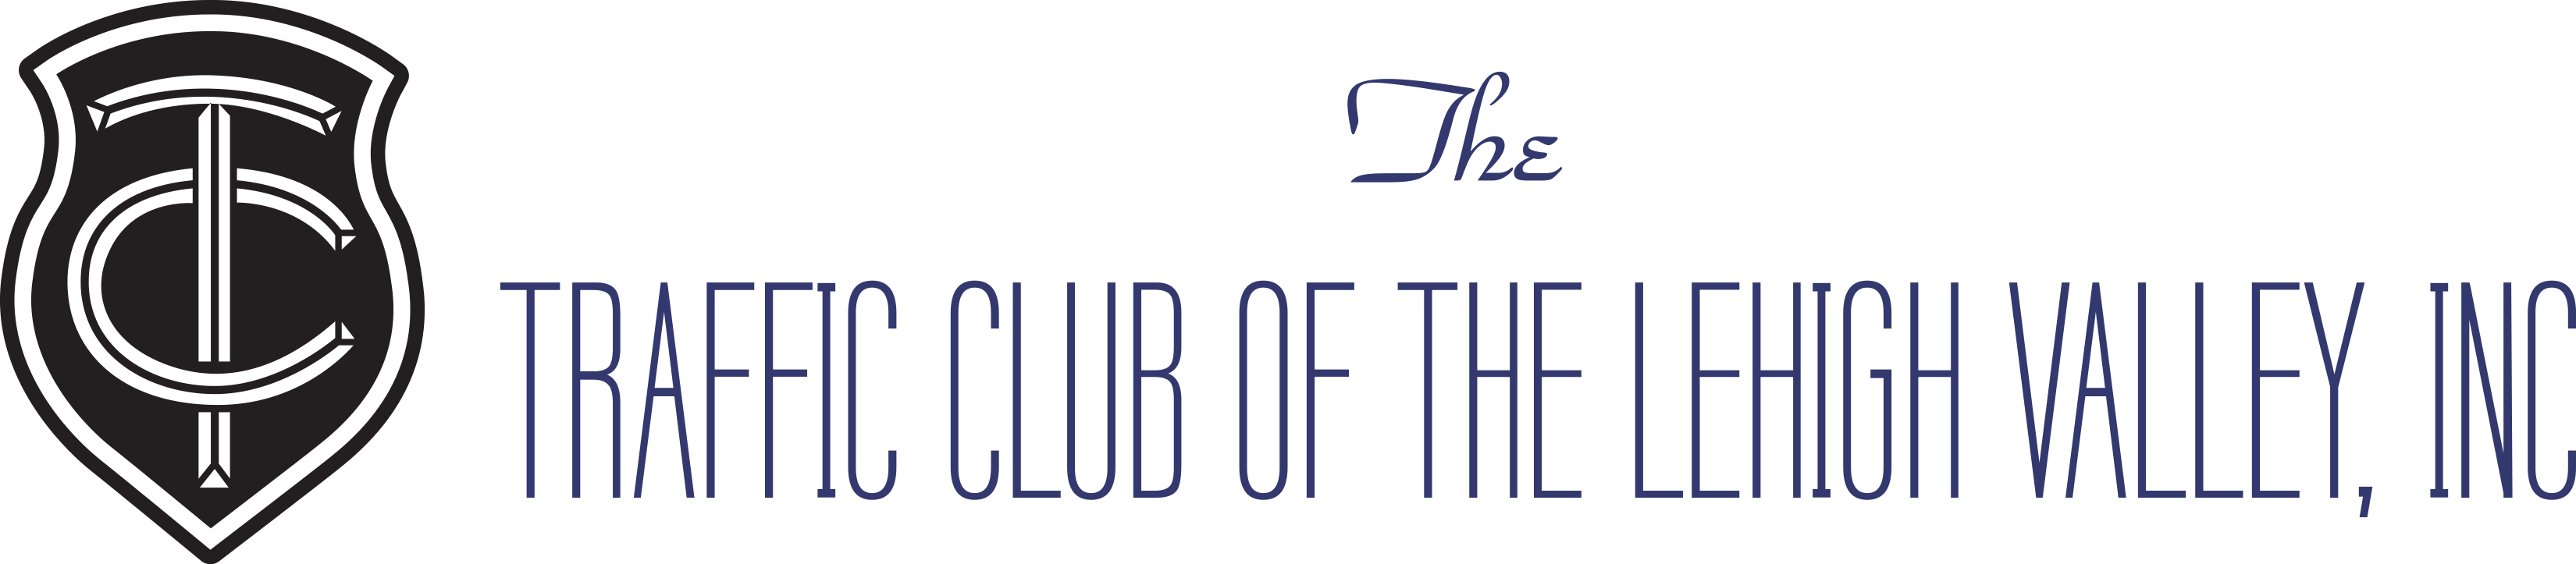 Traffic Club Of Lehigh Valley